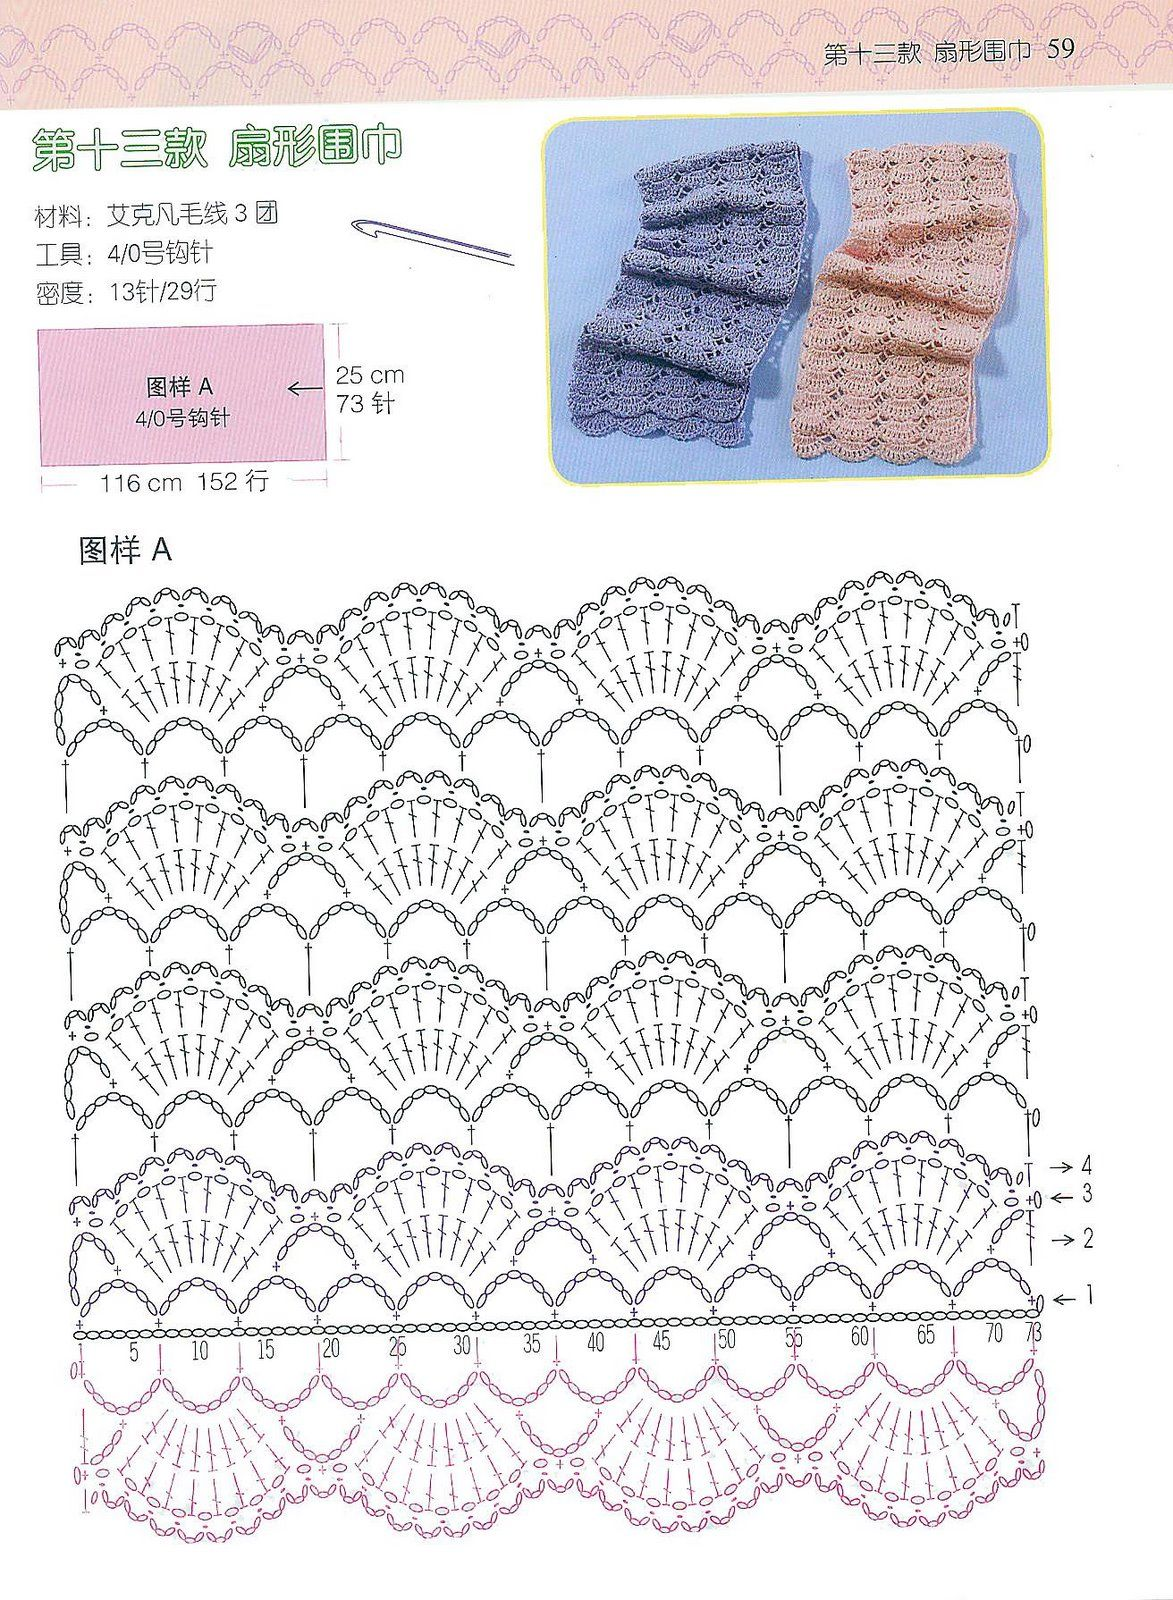 Japanese Lace Crochet Shawl Diagrams Easy Patterns Wiring Diagram Russian Scarf Pattern Complete U2022